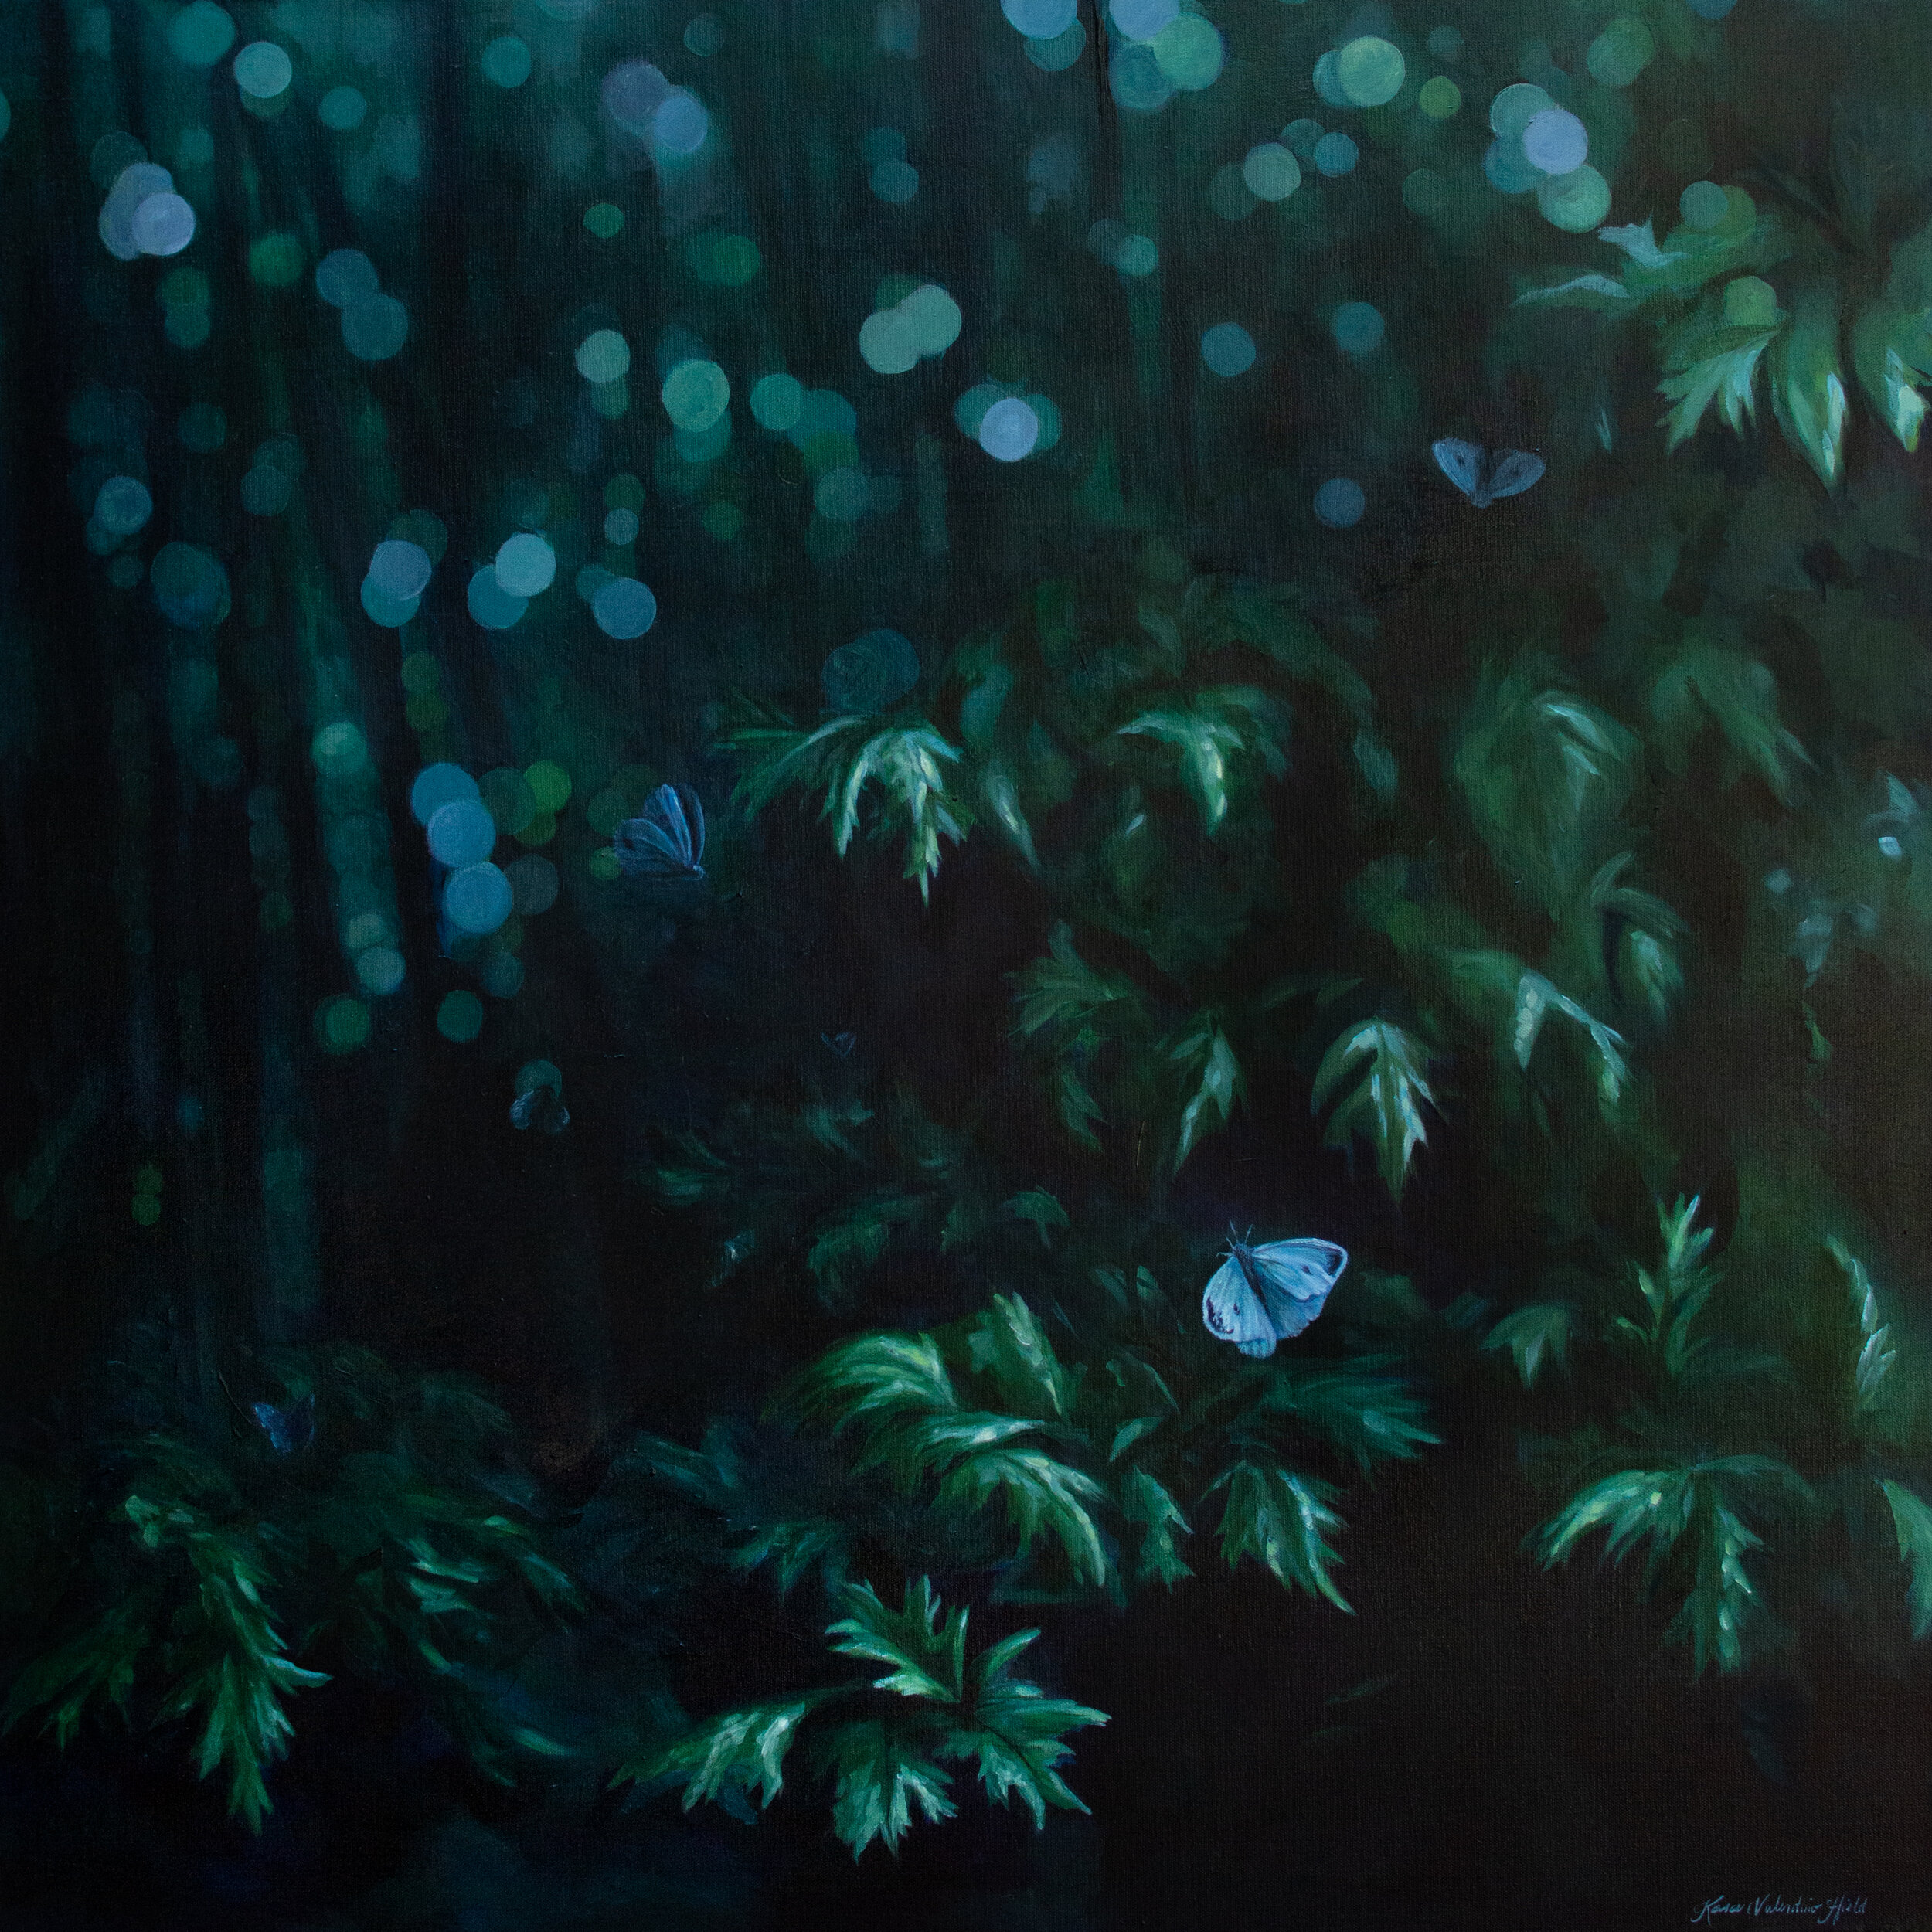 Woodland Ghosts - Abstract Nature Painting by Kara Valentino Ffield.